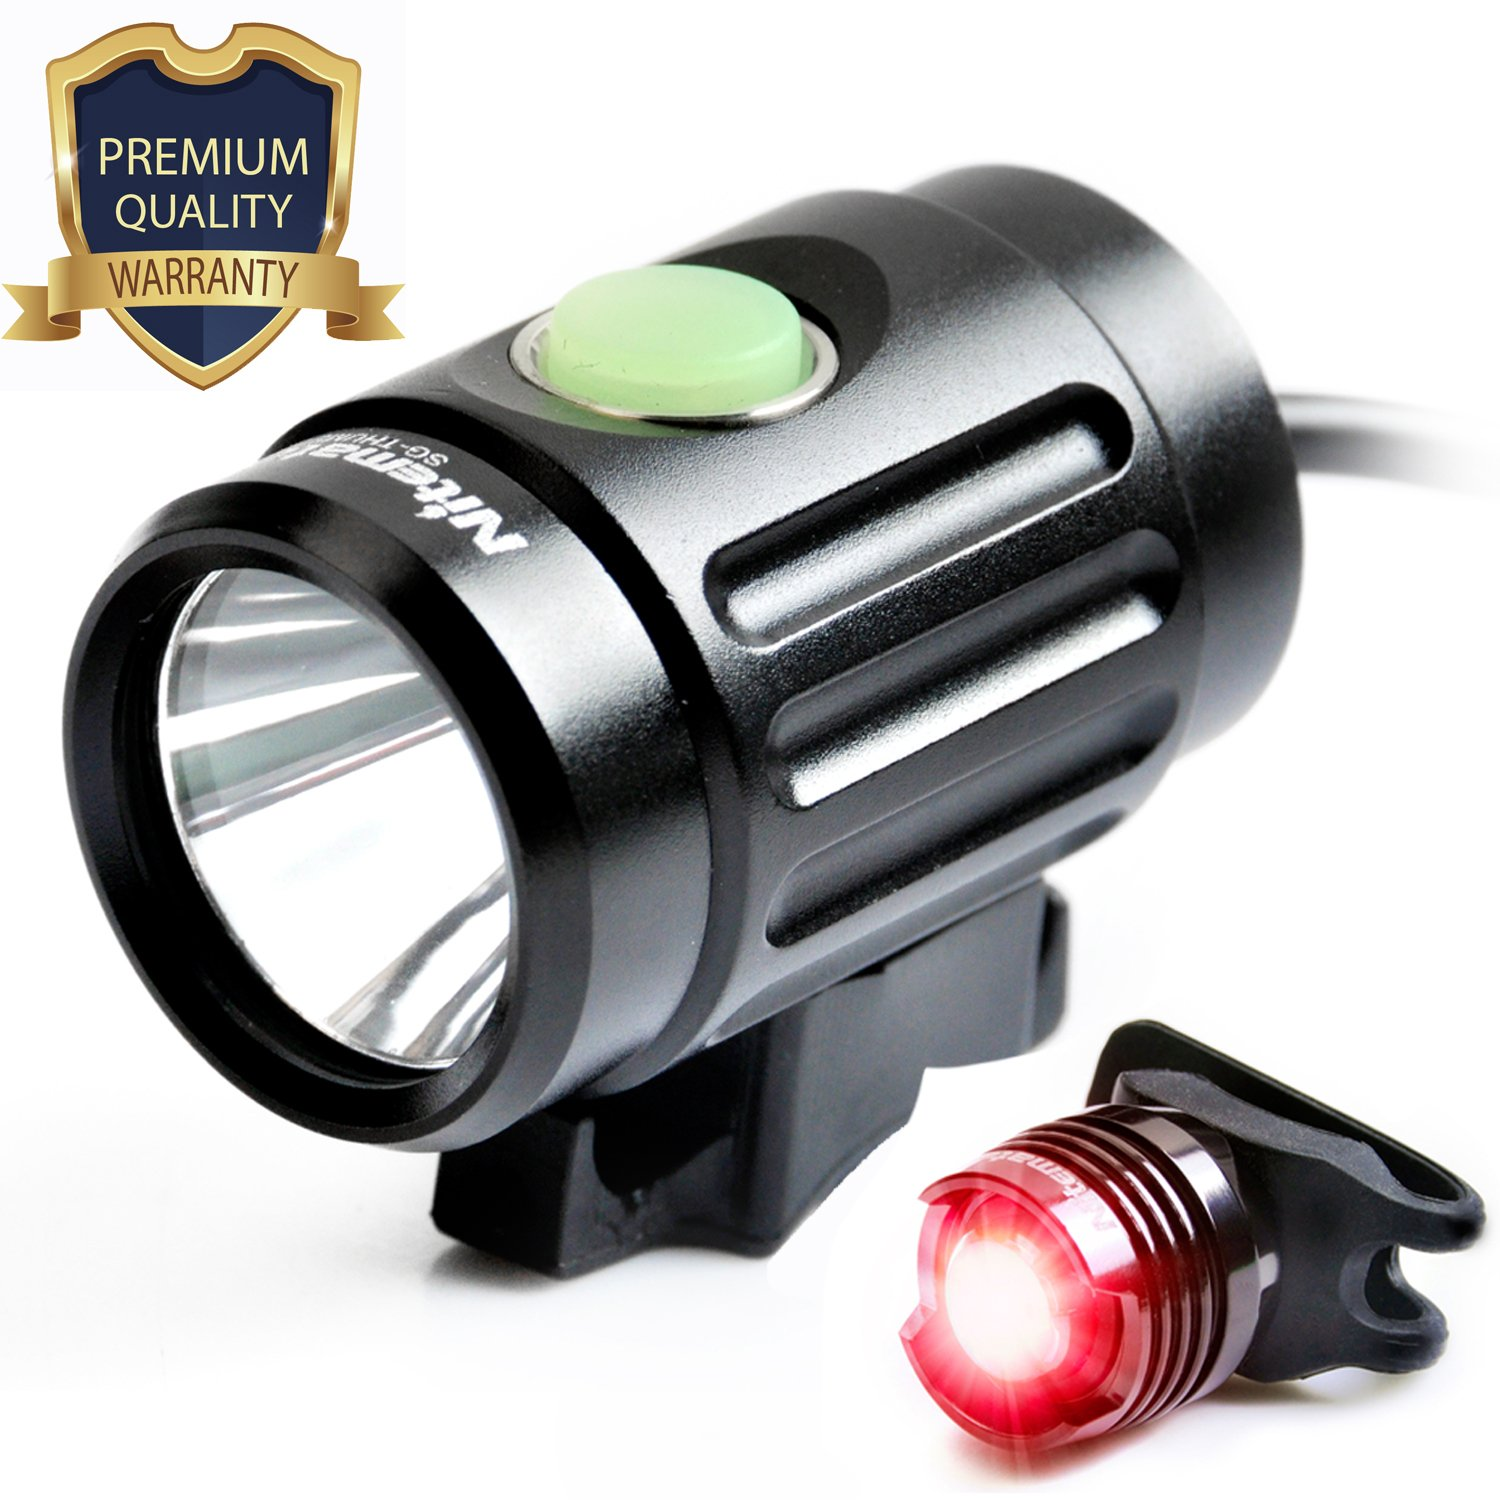 Bike Light Set-1000 Lumens USB Rechargeable Bicycle Headlight With Free Taillight, Best Bike Light Front and back Lighting Combinations